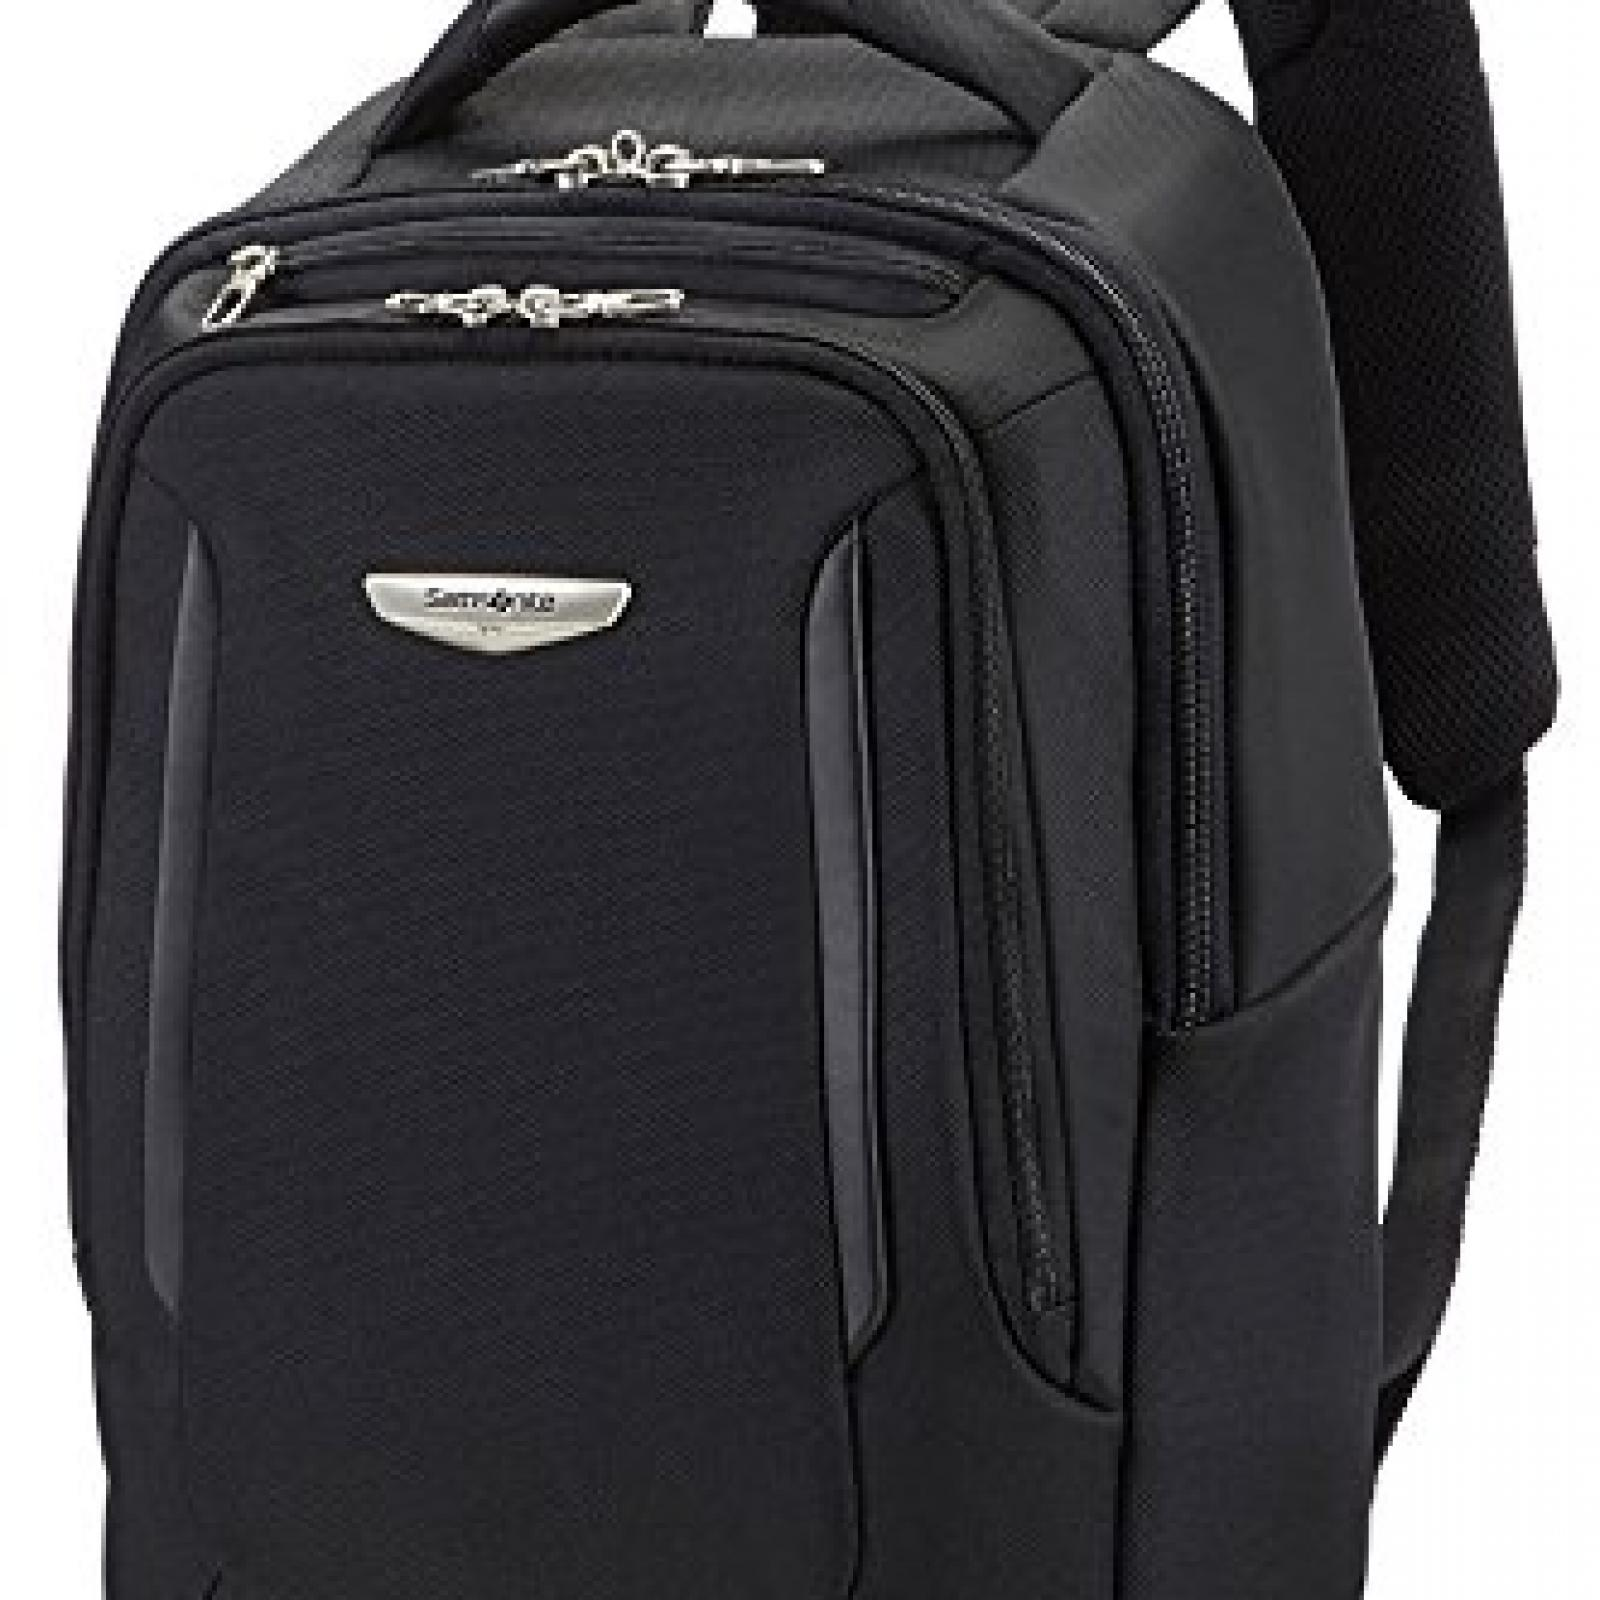 LAPTOP BACKPACK 14.1 X'BLADE 2.0